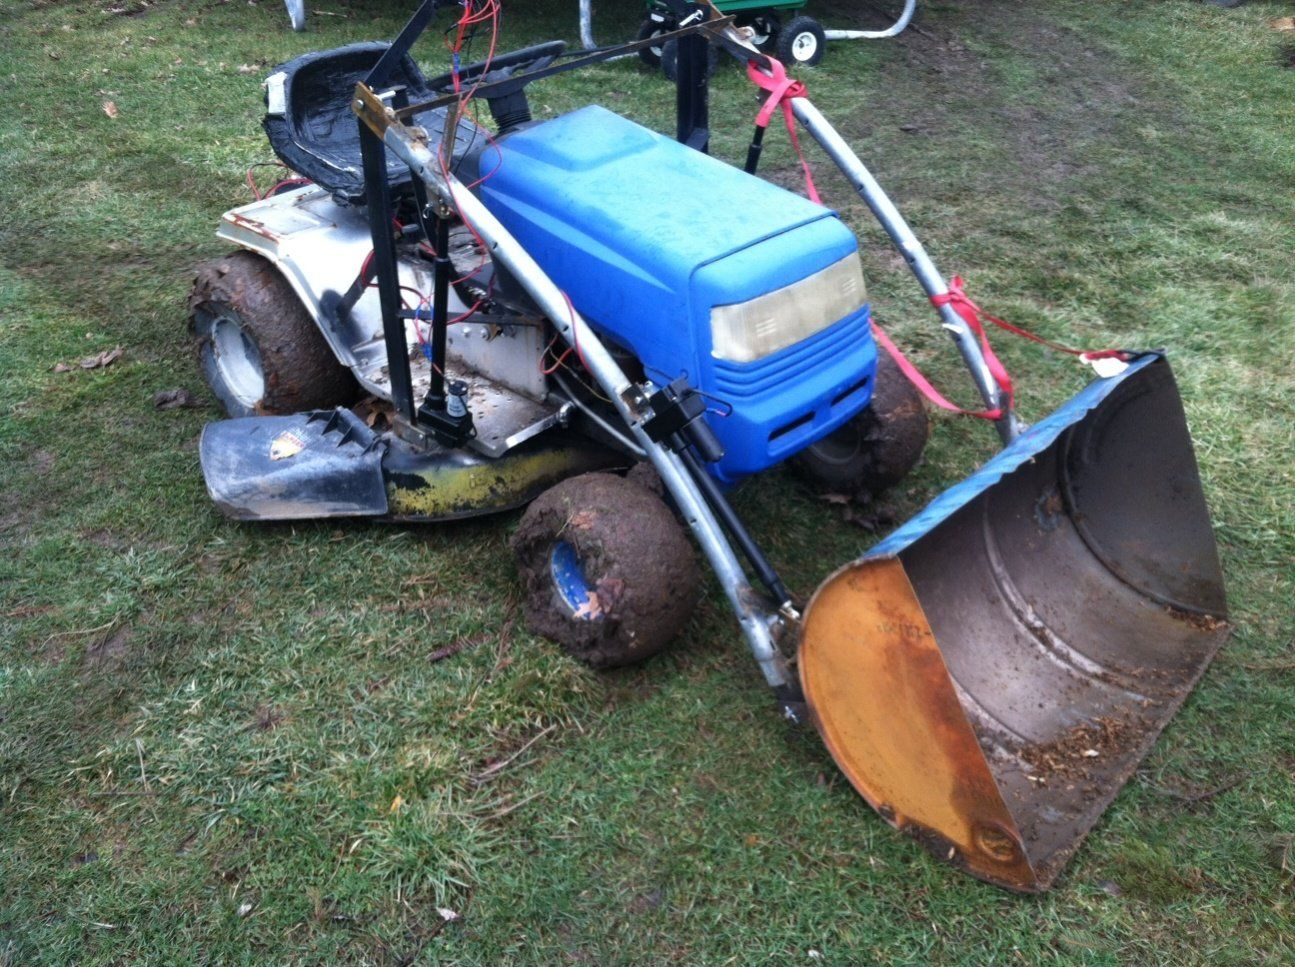 Mtd Lawn Tractor Front End Loader Build My Tractor Forum In 2020 Lawn Tractor Tractors Tractor Accessories